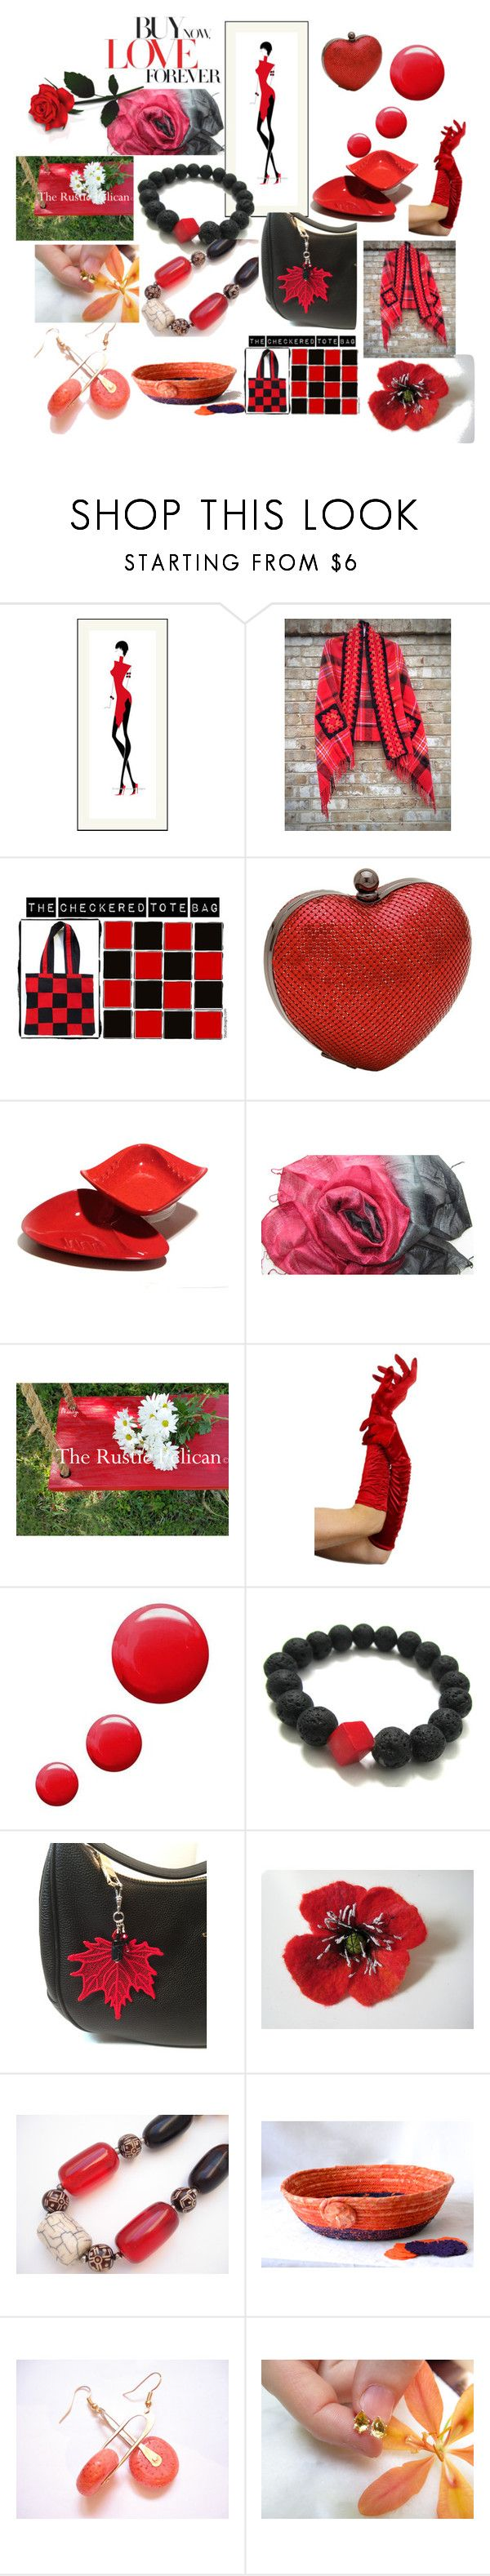 """""""Buy Now-Love Forever"""" by anna-recycle ❤ liked on Polyvore featuring Whiting & Davis, Topshop, modern, rustic and vintage"""